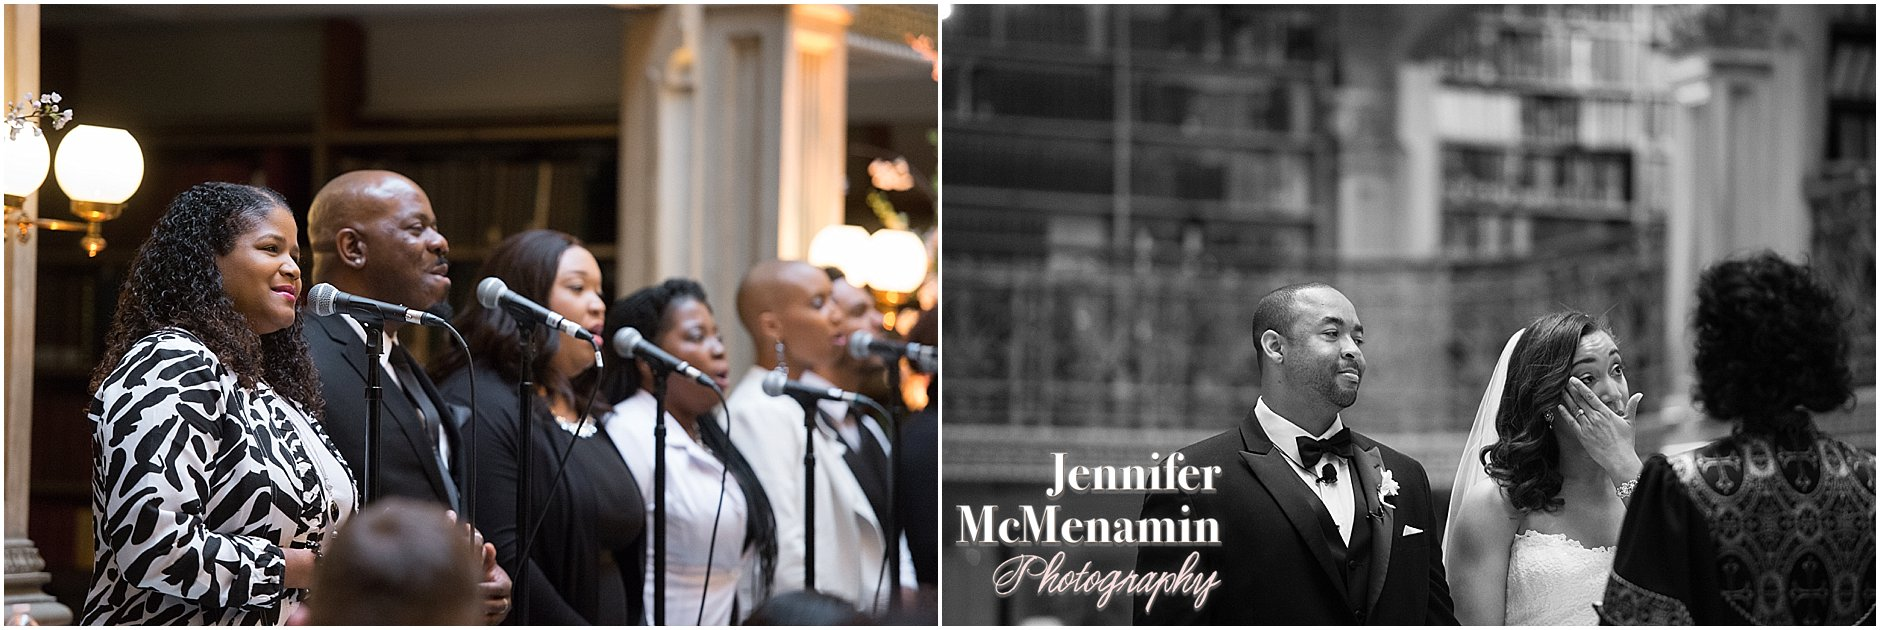 041-Peabody-Library-Wedding_WilsonPatterson_01794-0376_Jennifer-McMenamin-Photography